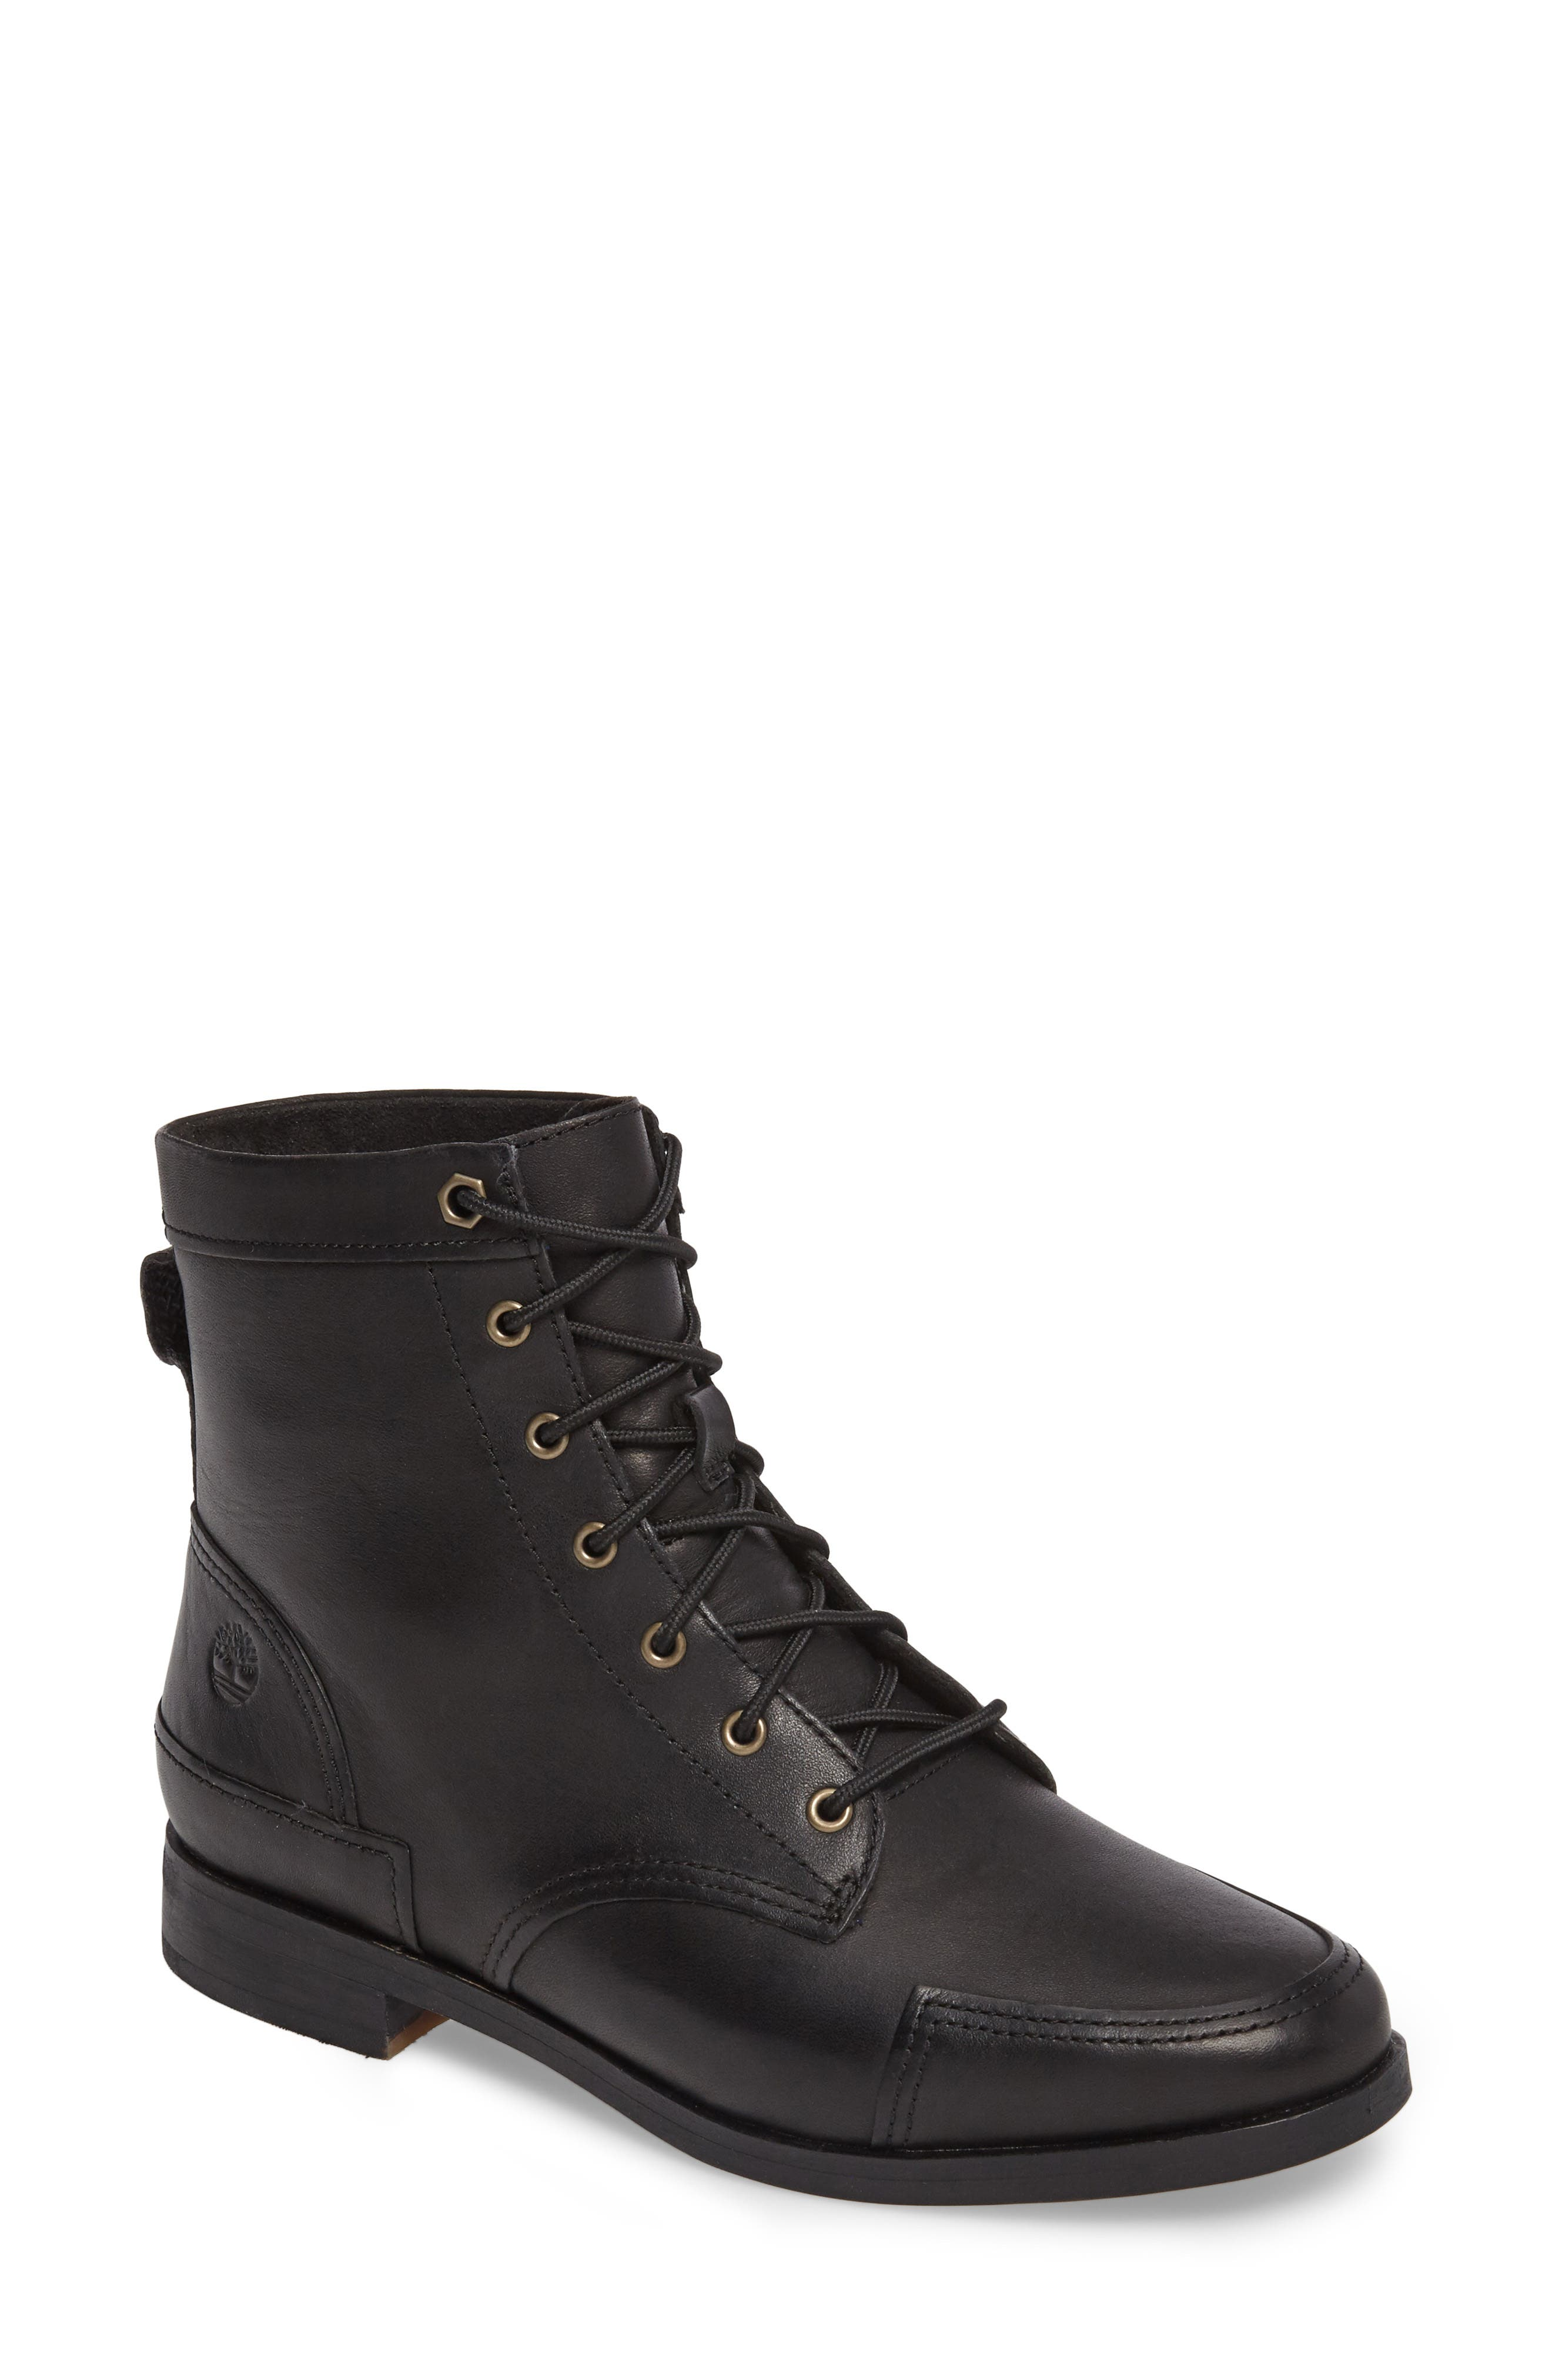 Main Image - Timberland Somers Falls Lace-Up Boot (Women)